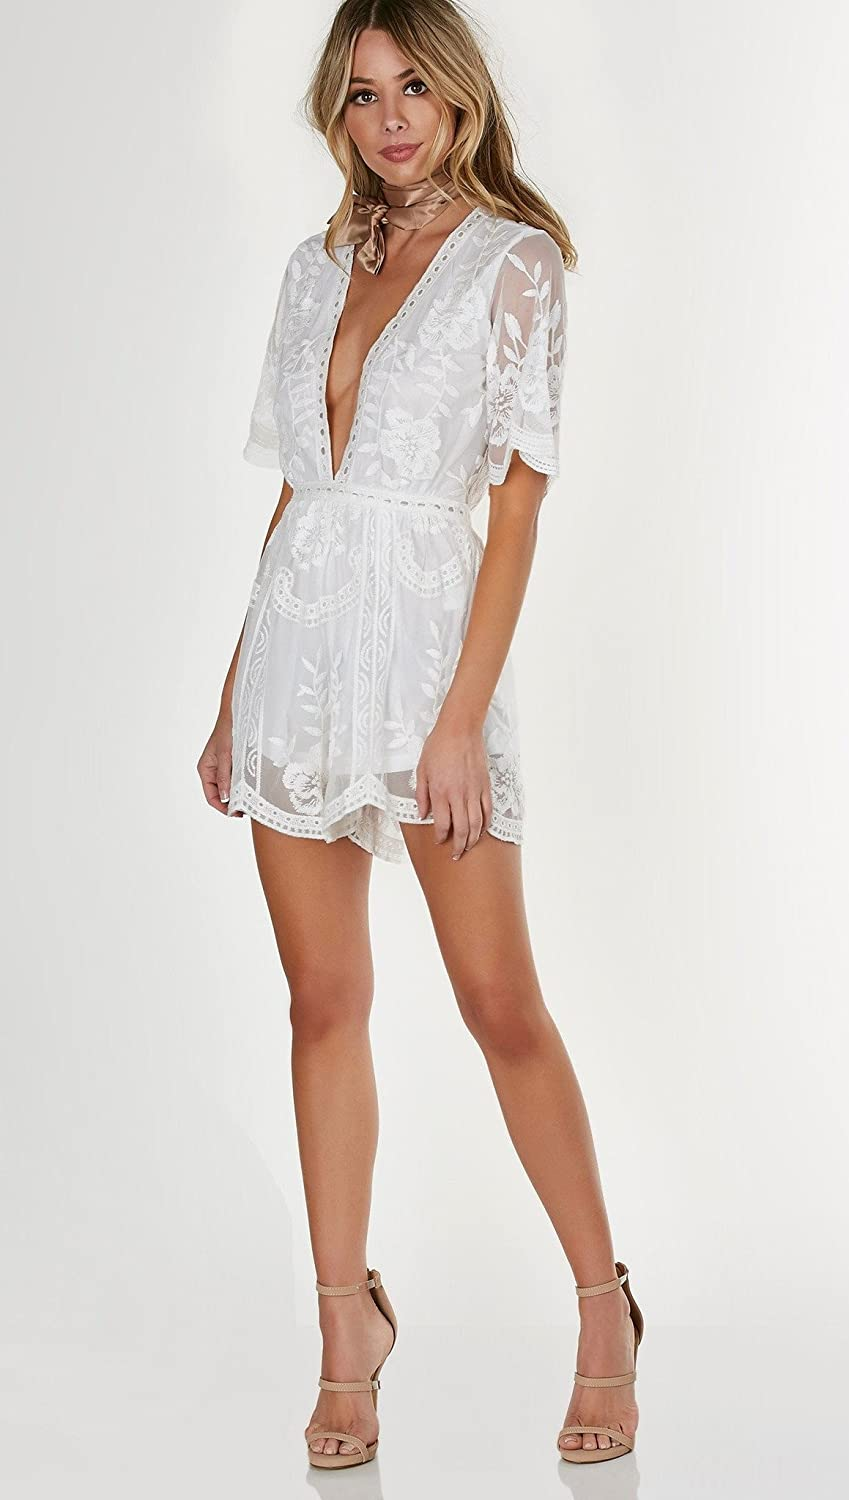 8b88bfa5fb9 Amazon.com  Honey Punch Antique Embroidered Crochet Deep V Neck Romper  White Lace  Clothing